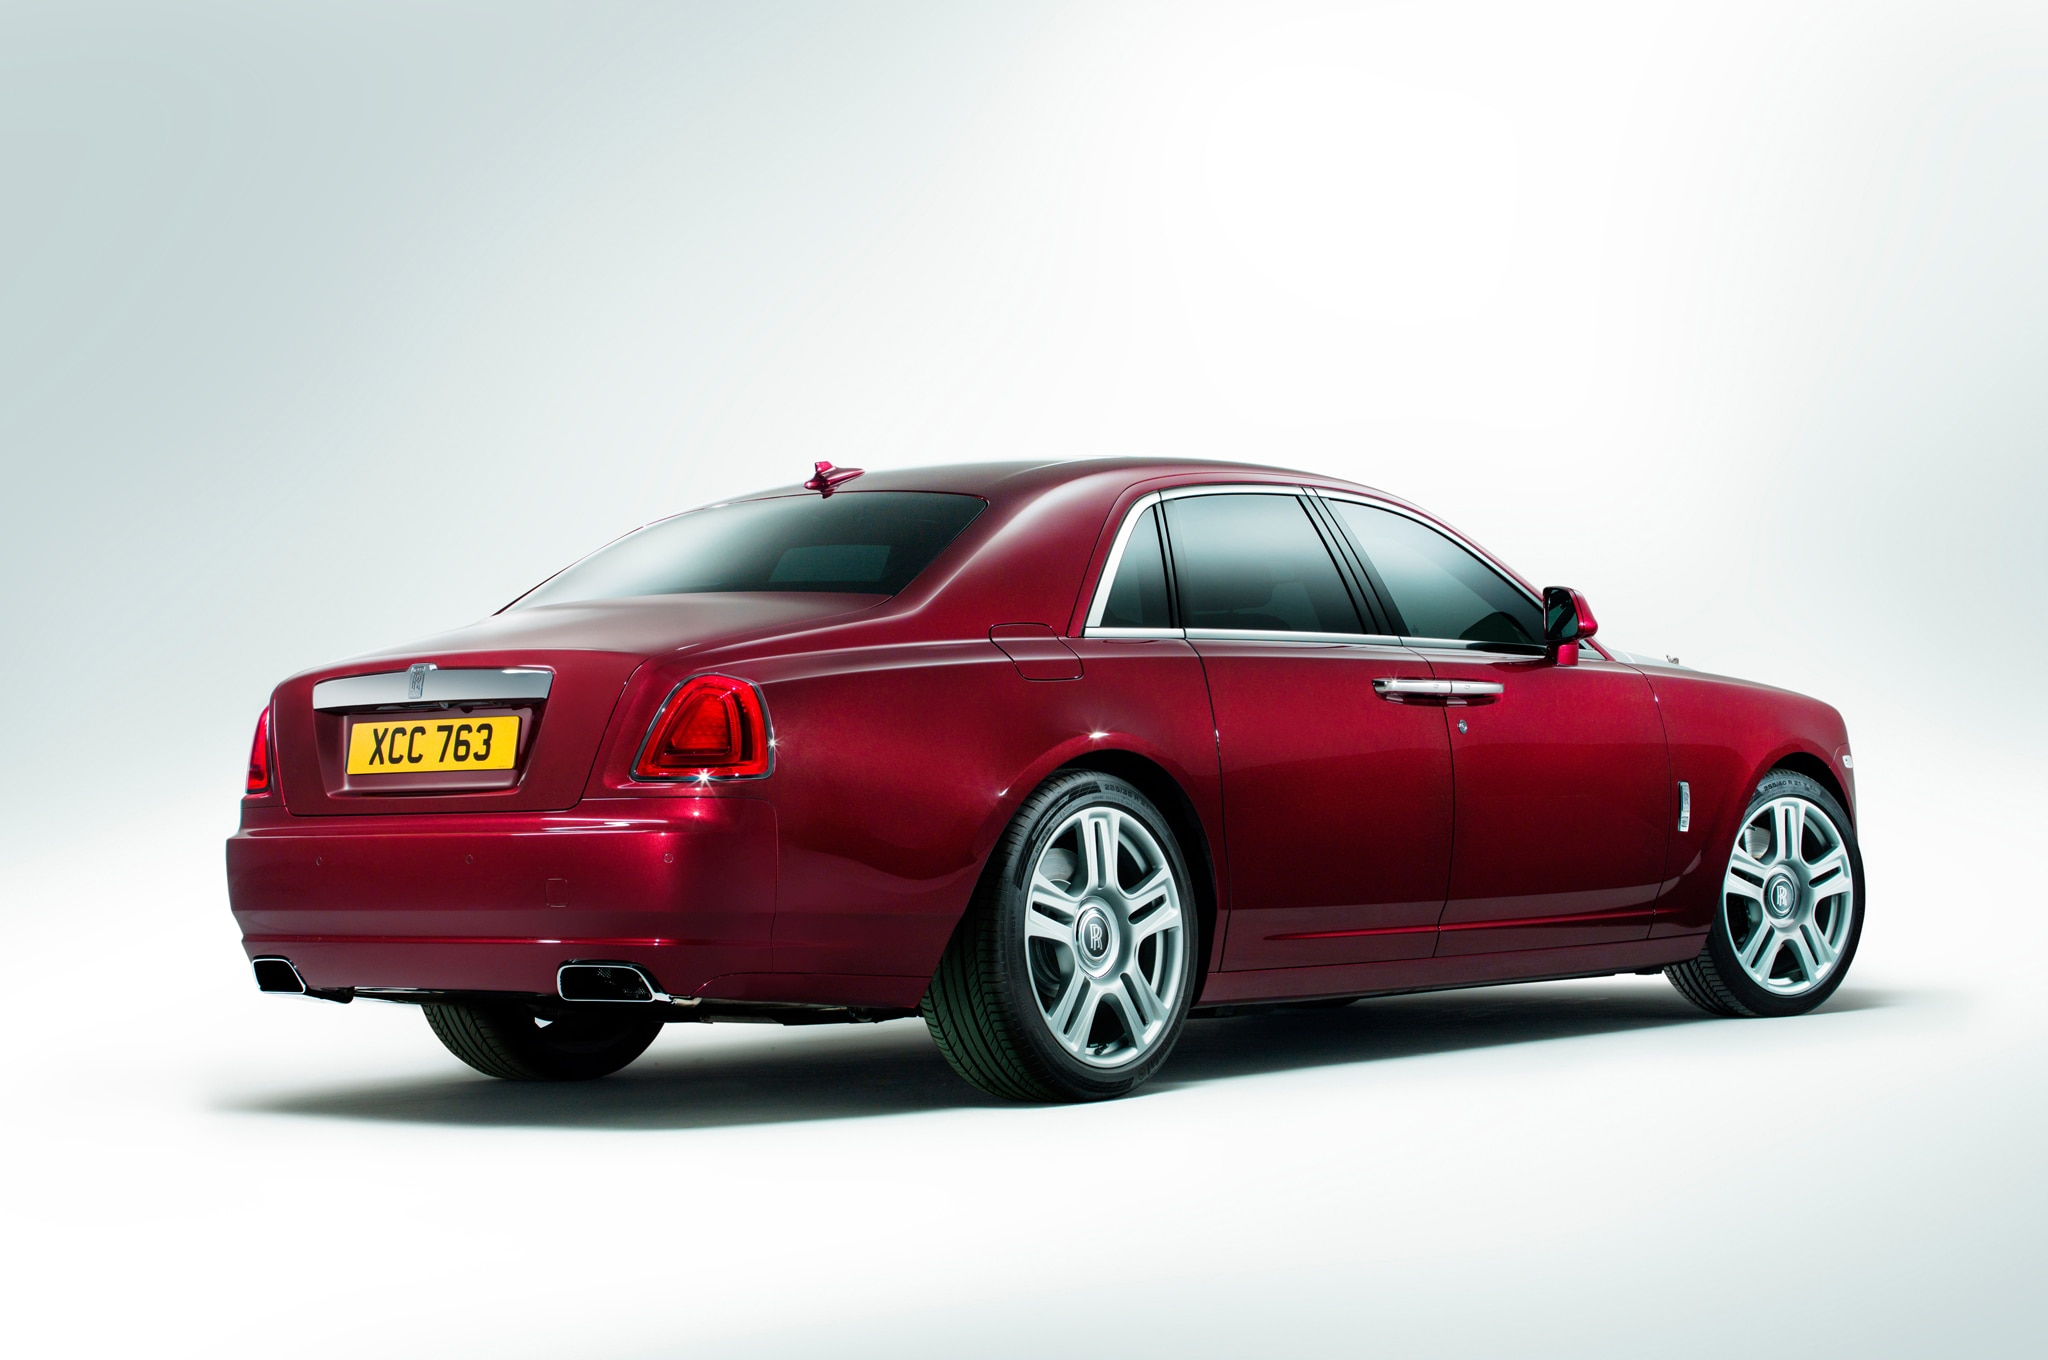 The biggest change to the look of the rolls royce ghost series ii